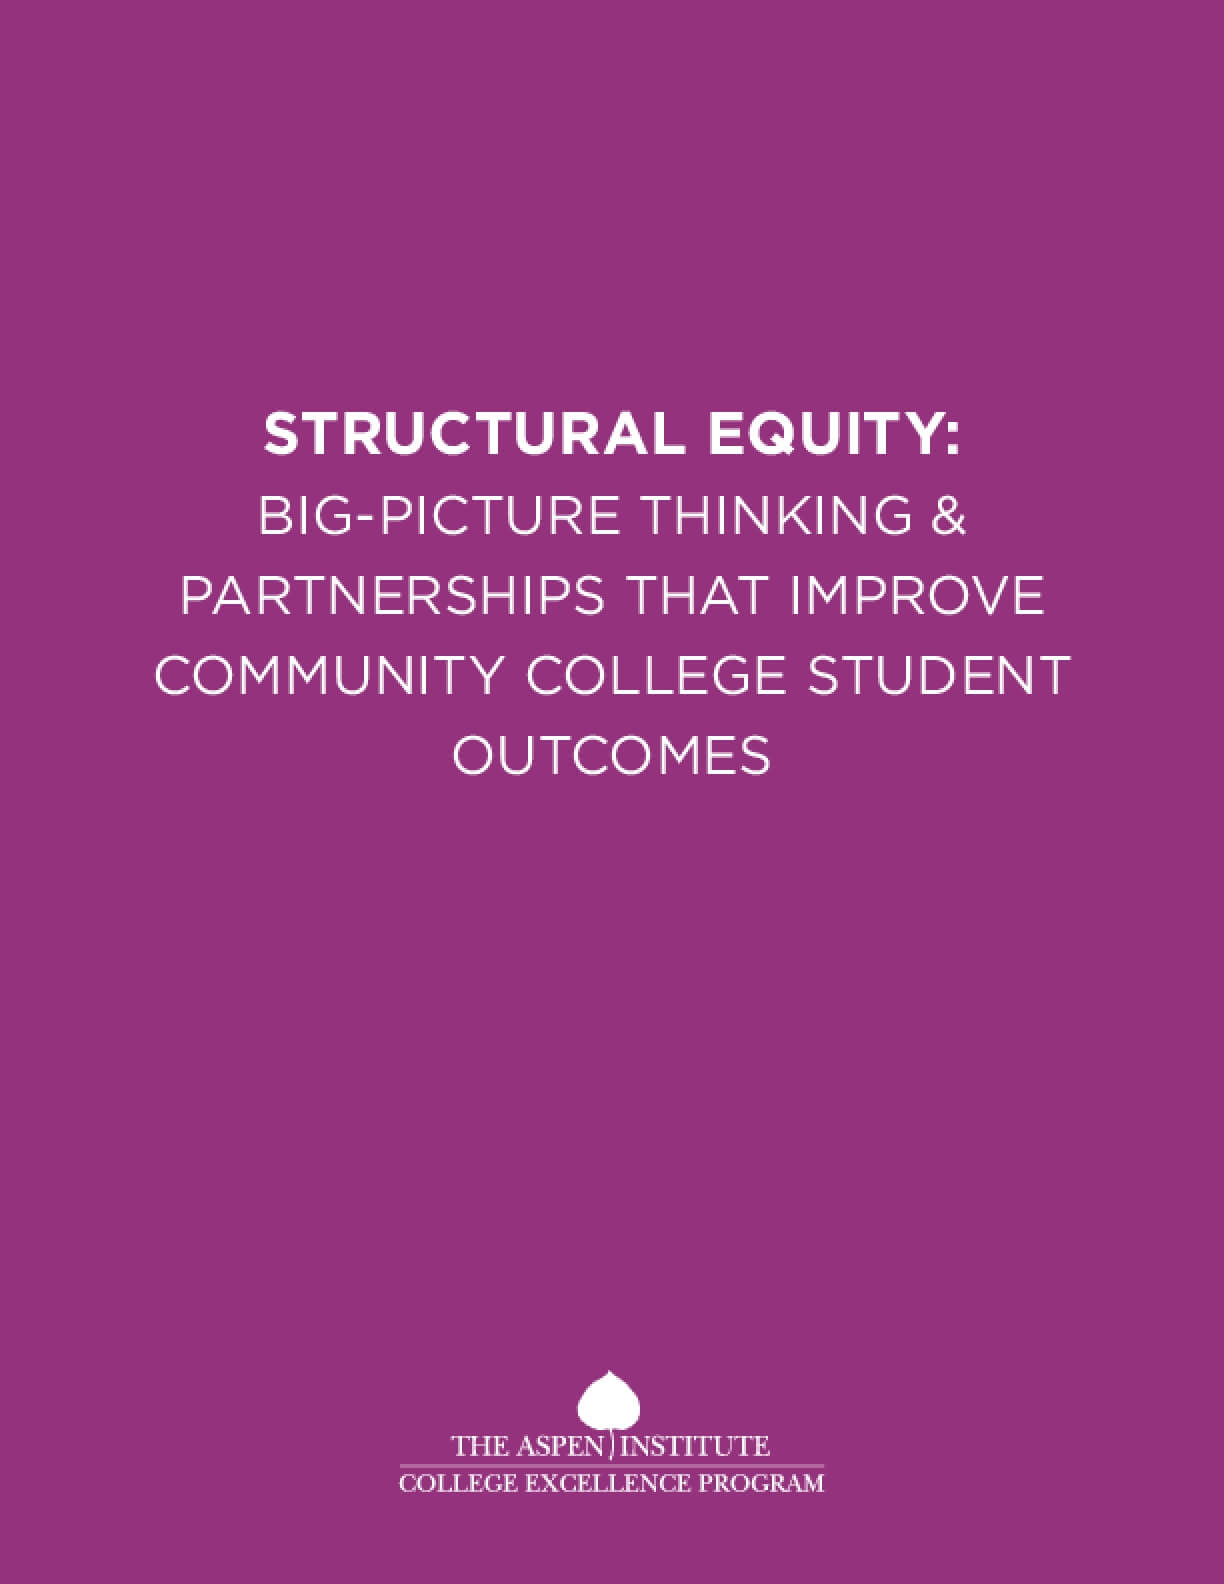 Structural Equity: Big-Picture Thinking & Partnerships That Improve Community College Student Outcomes